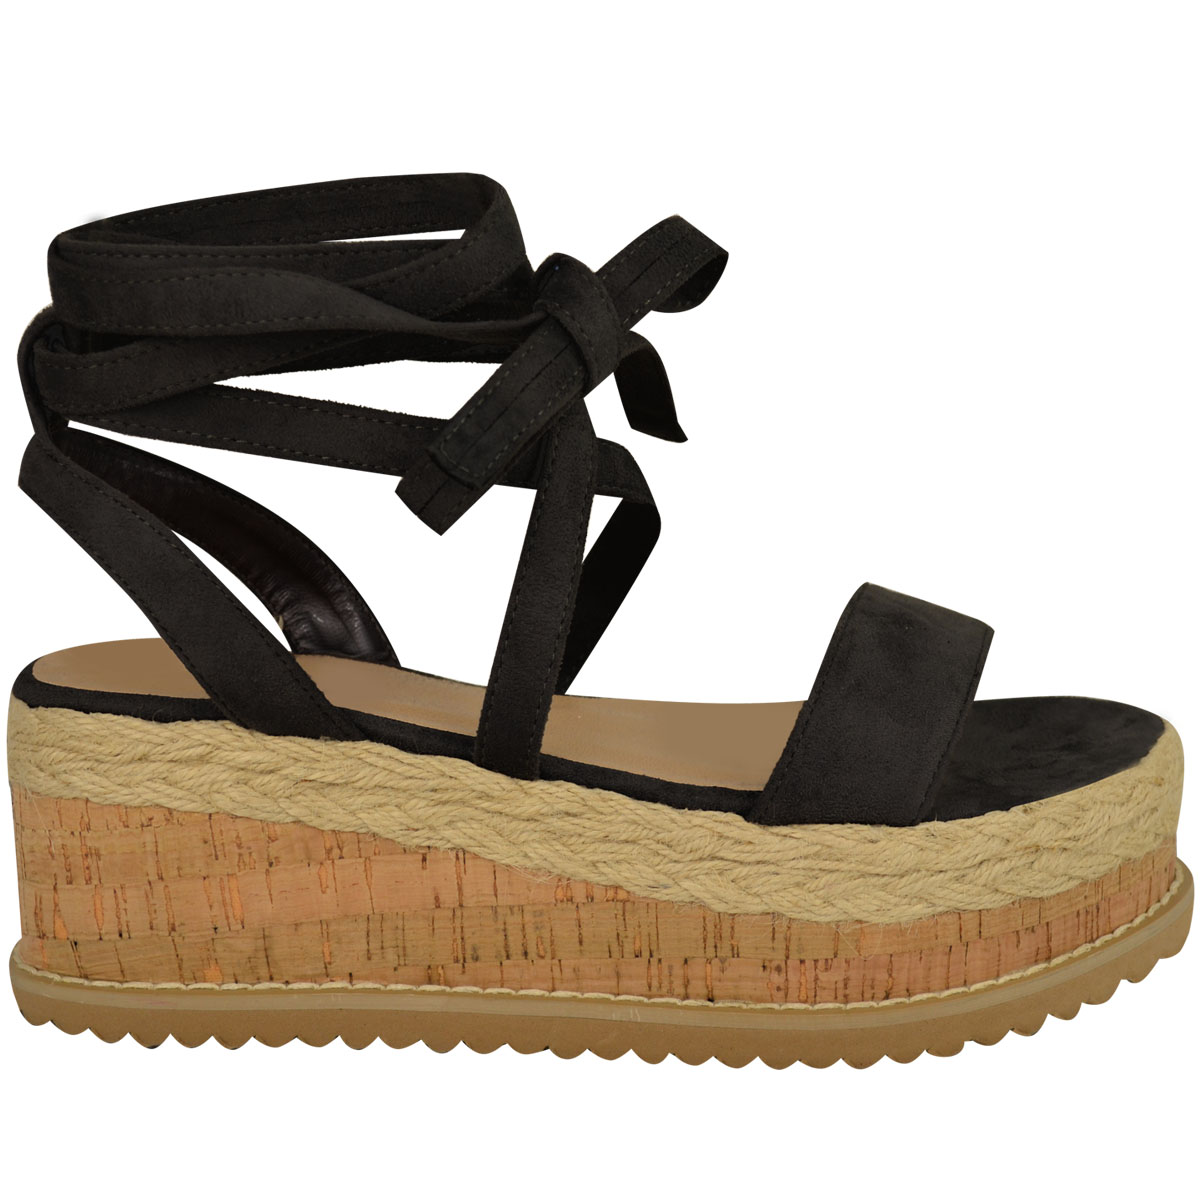 Womens Ladies Flatform Cork Espadrille Wedge Sandals Ankle Lace Up Shoes Size Ebay